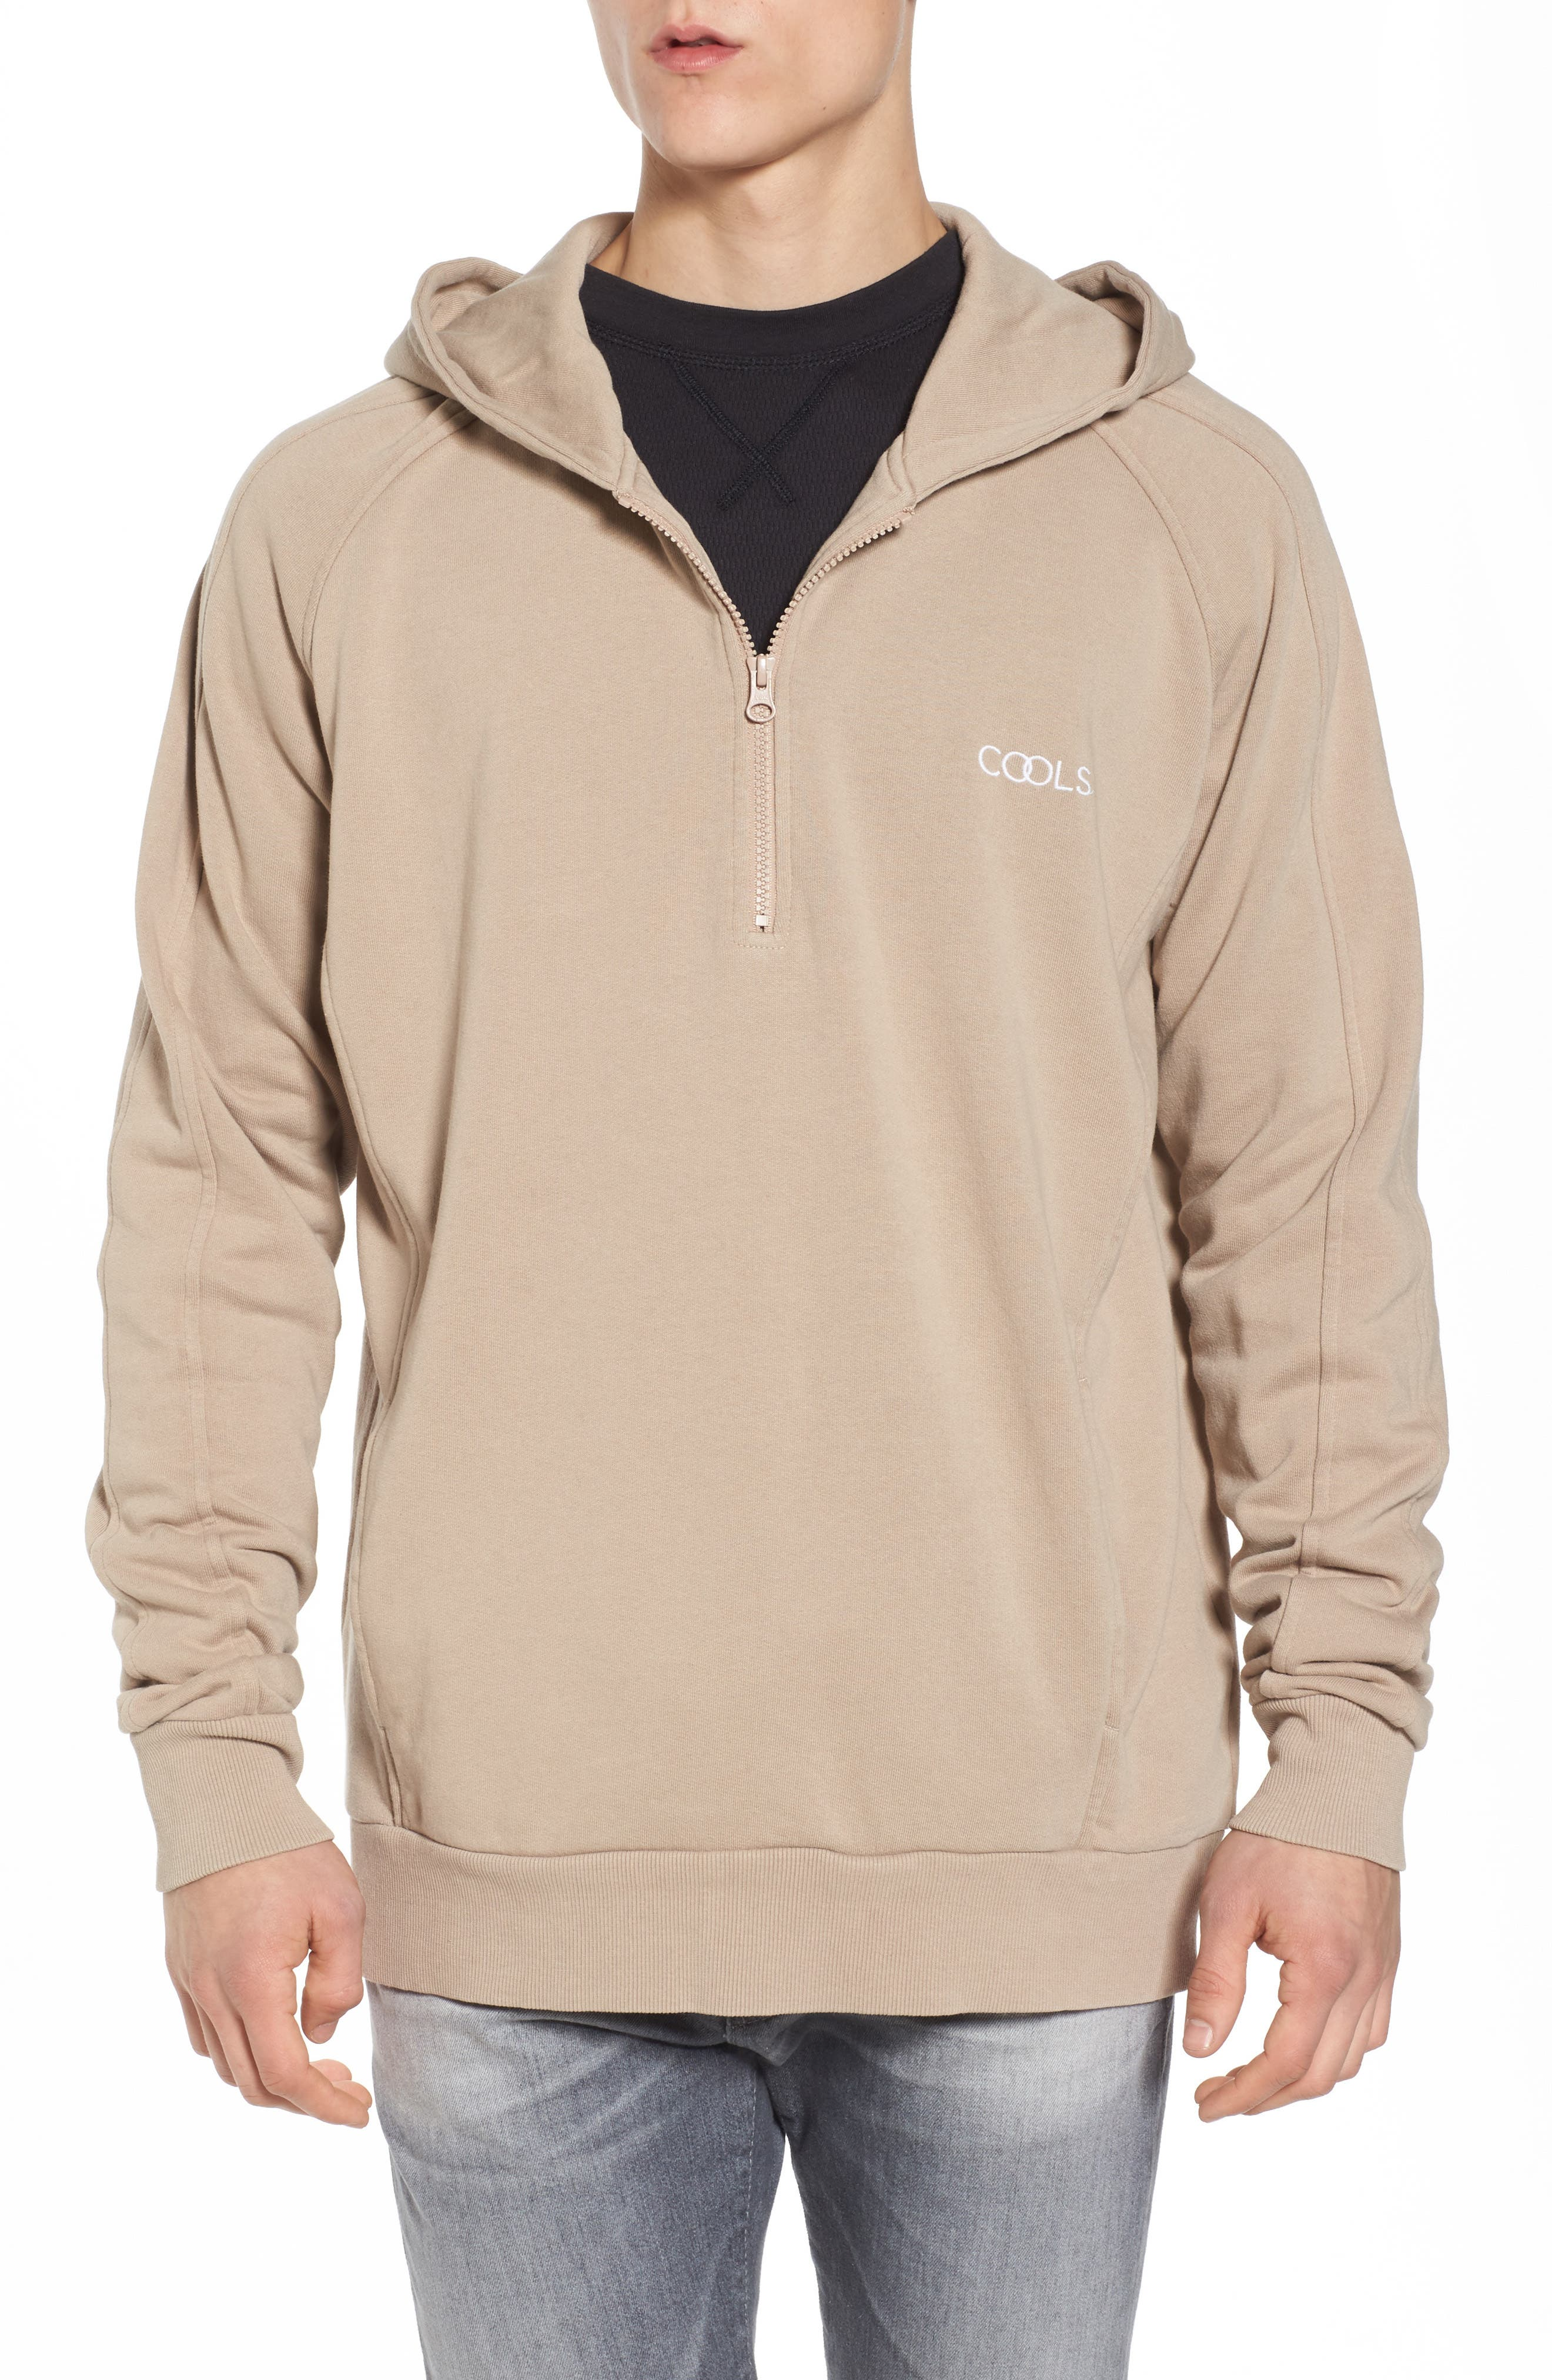 Olympic Zip Pullover Hoodie,                         Main,                         color, 260